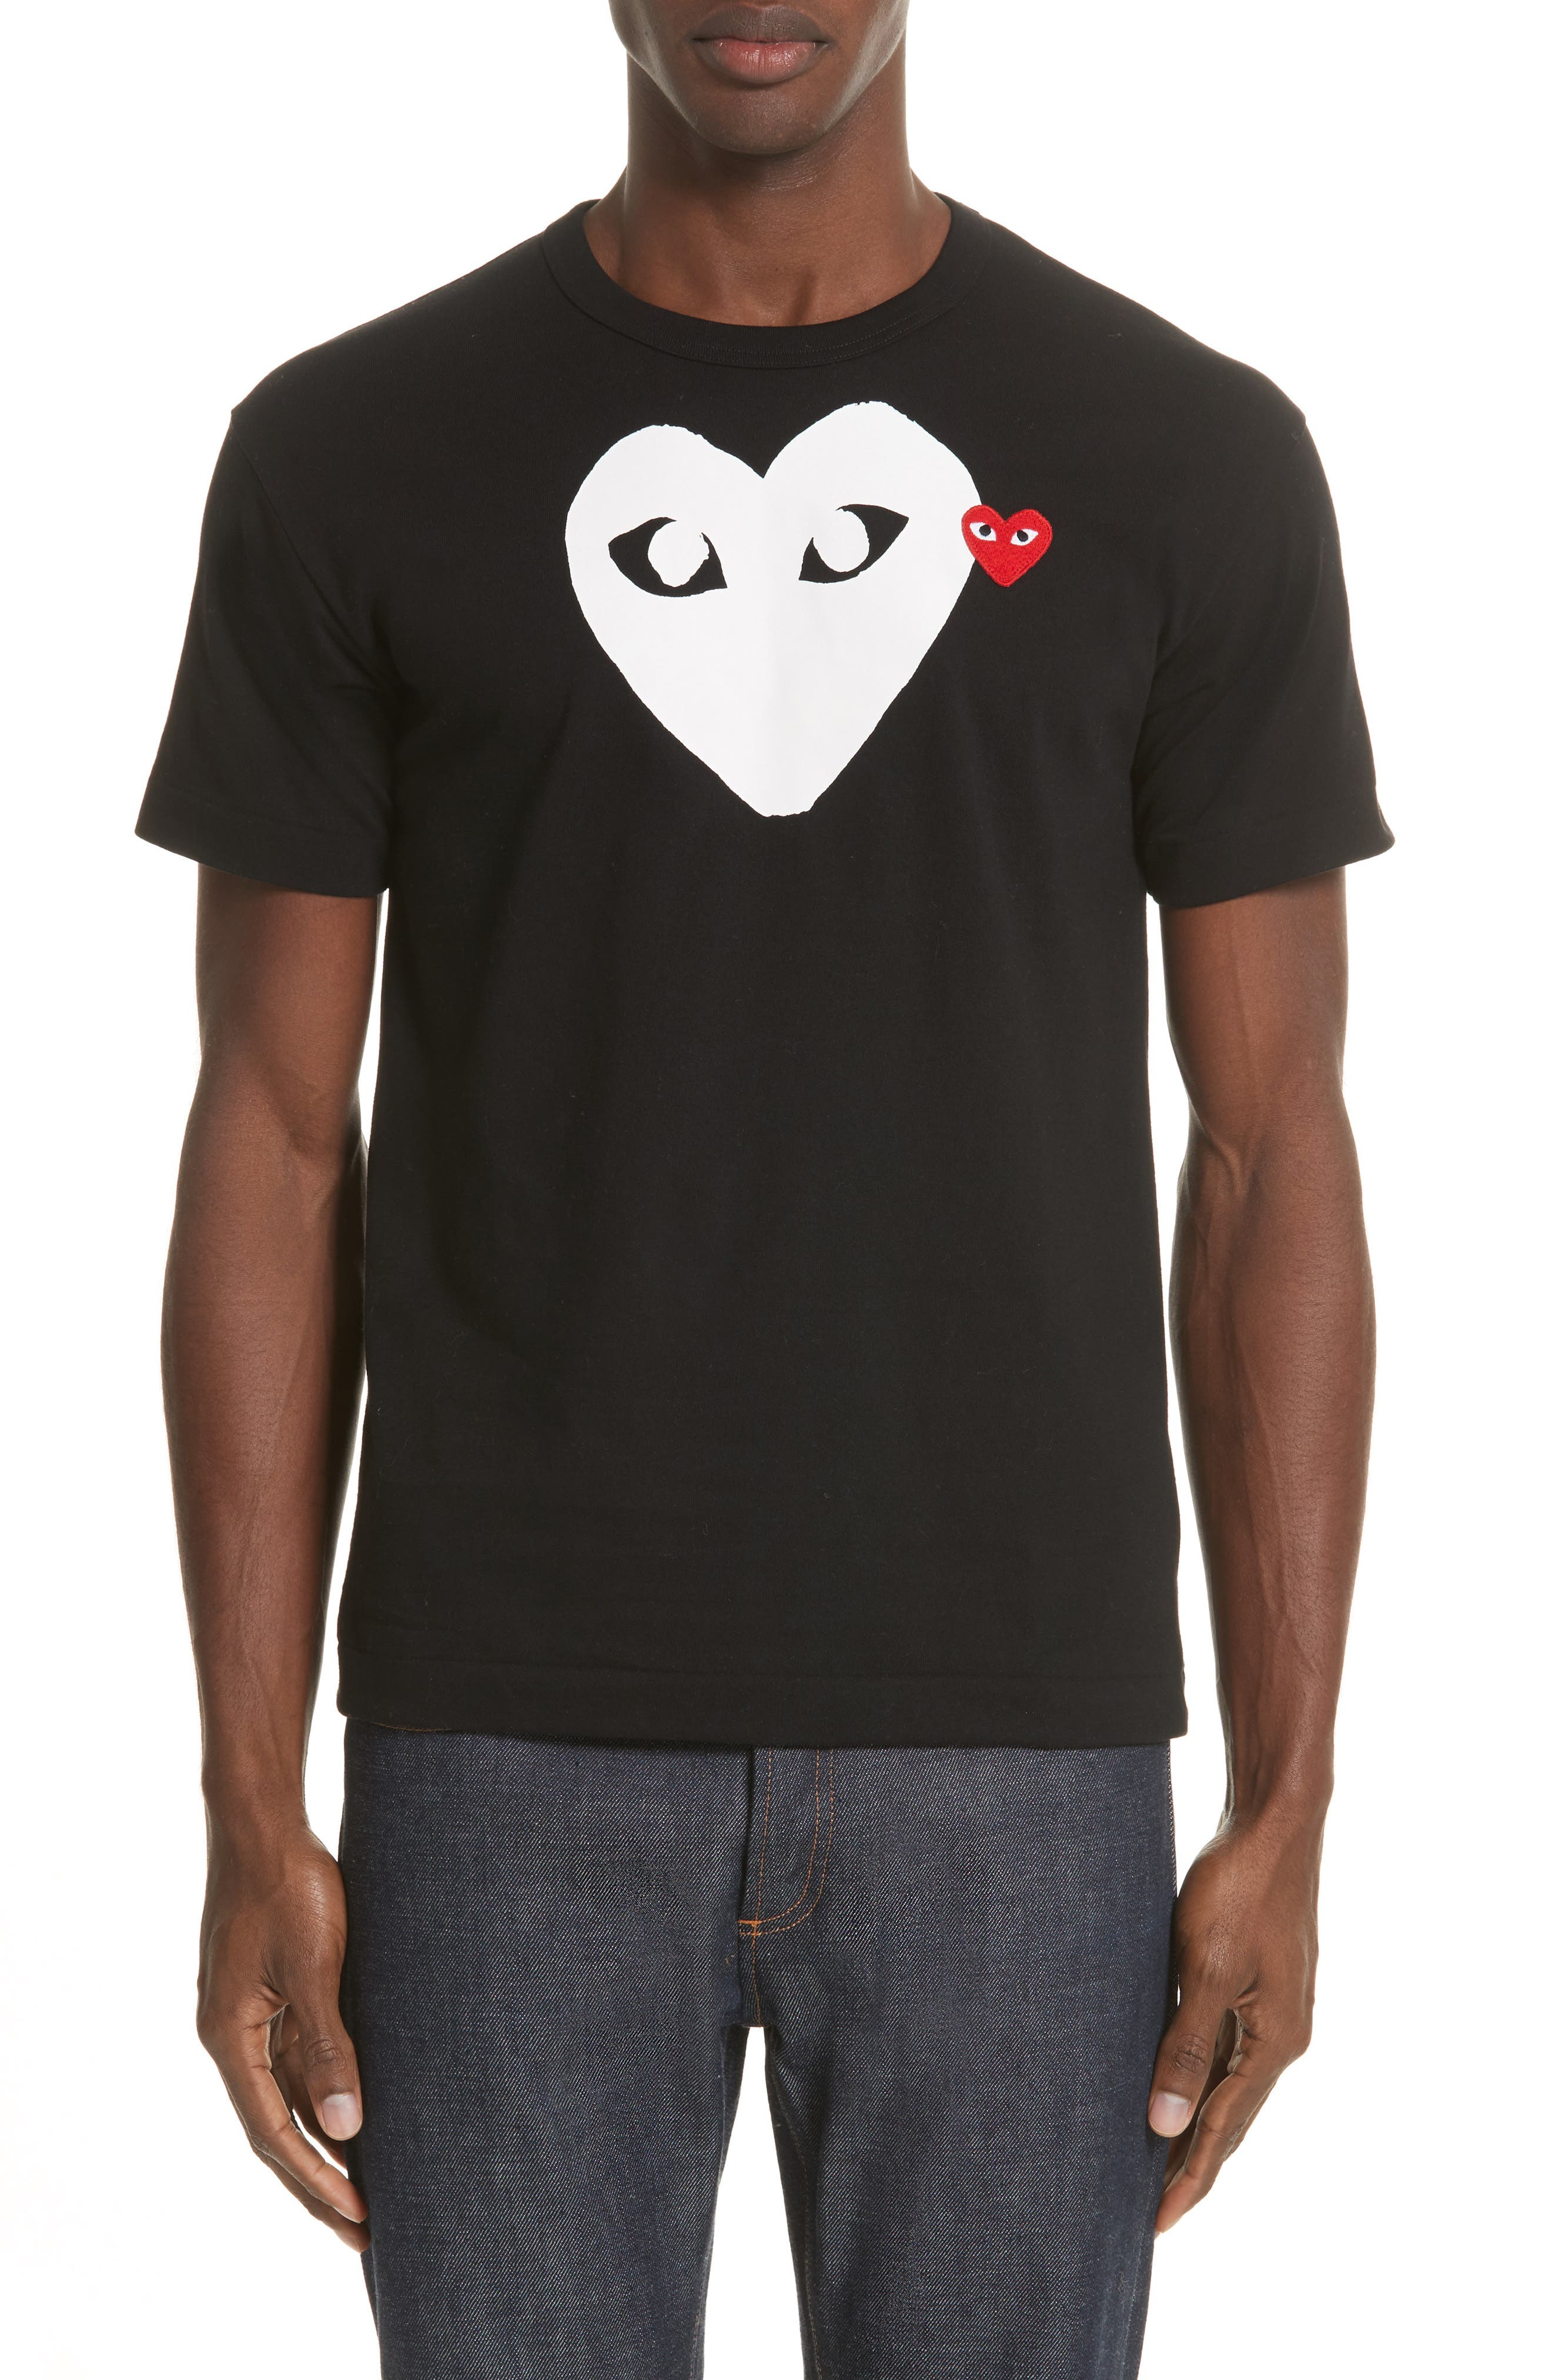 T&m Home Design Part - 33: Comme Des Garçons PLAY X-Ray Heart Logo T-Shirt